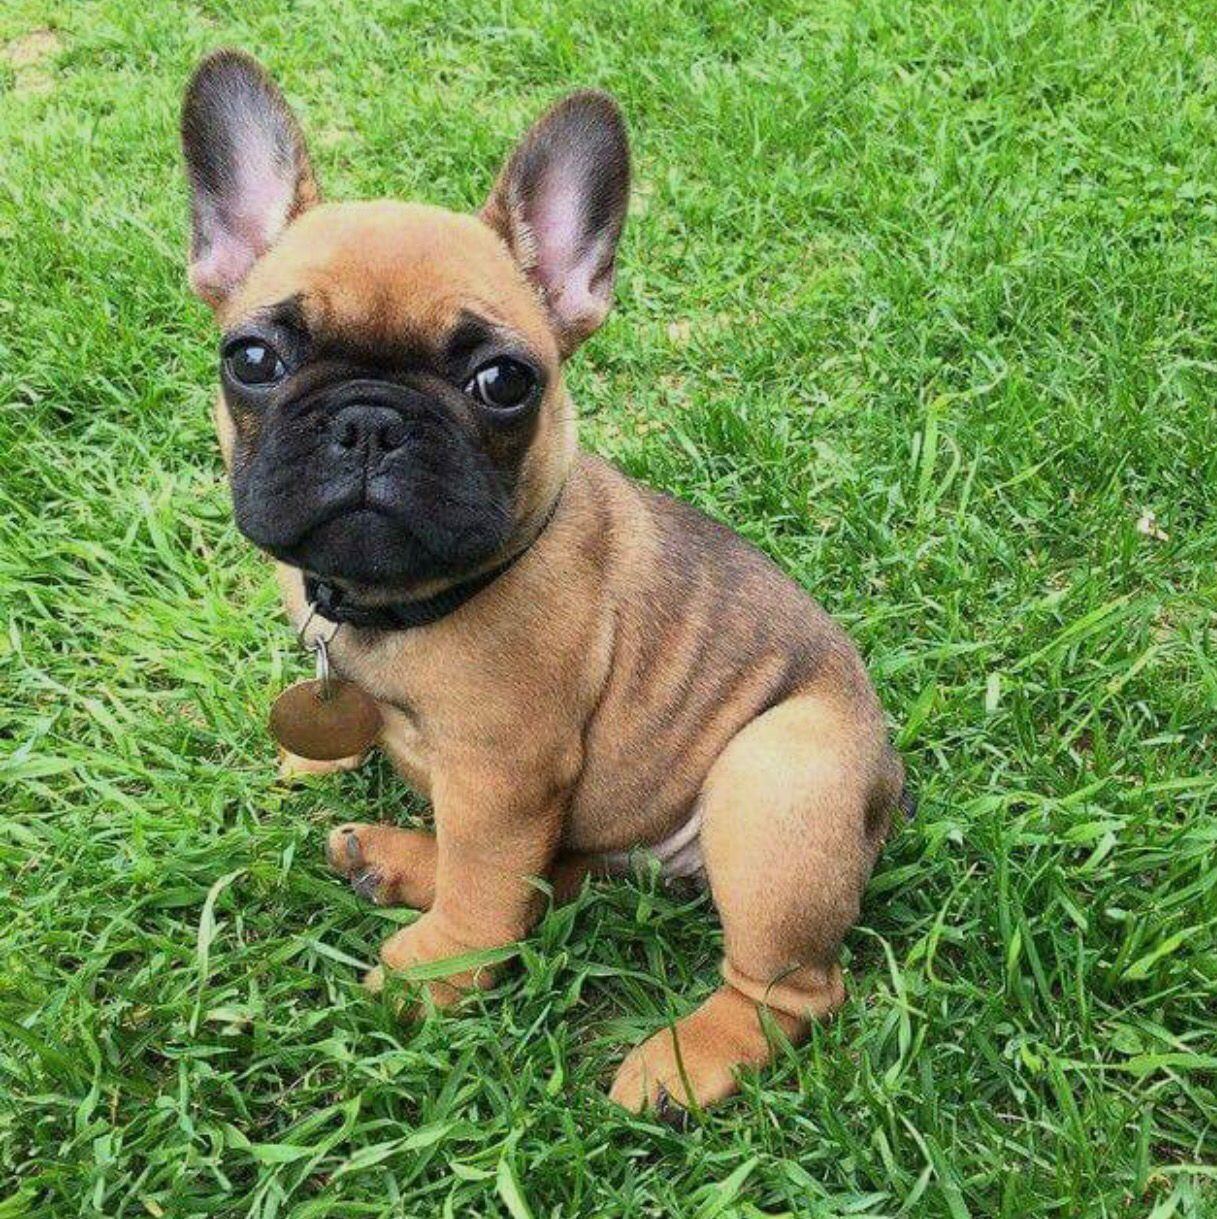 fawn french bulldog with black mask | cute puppies, french